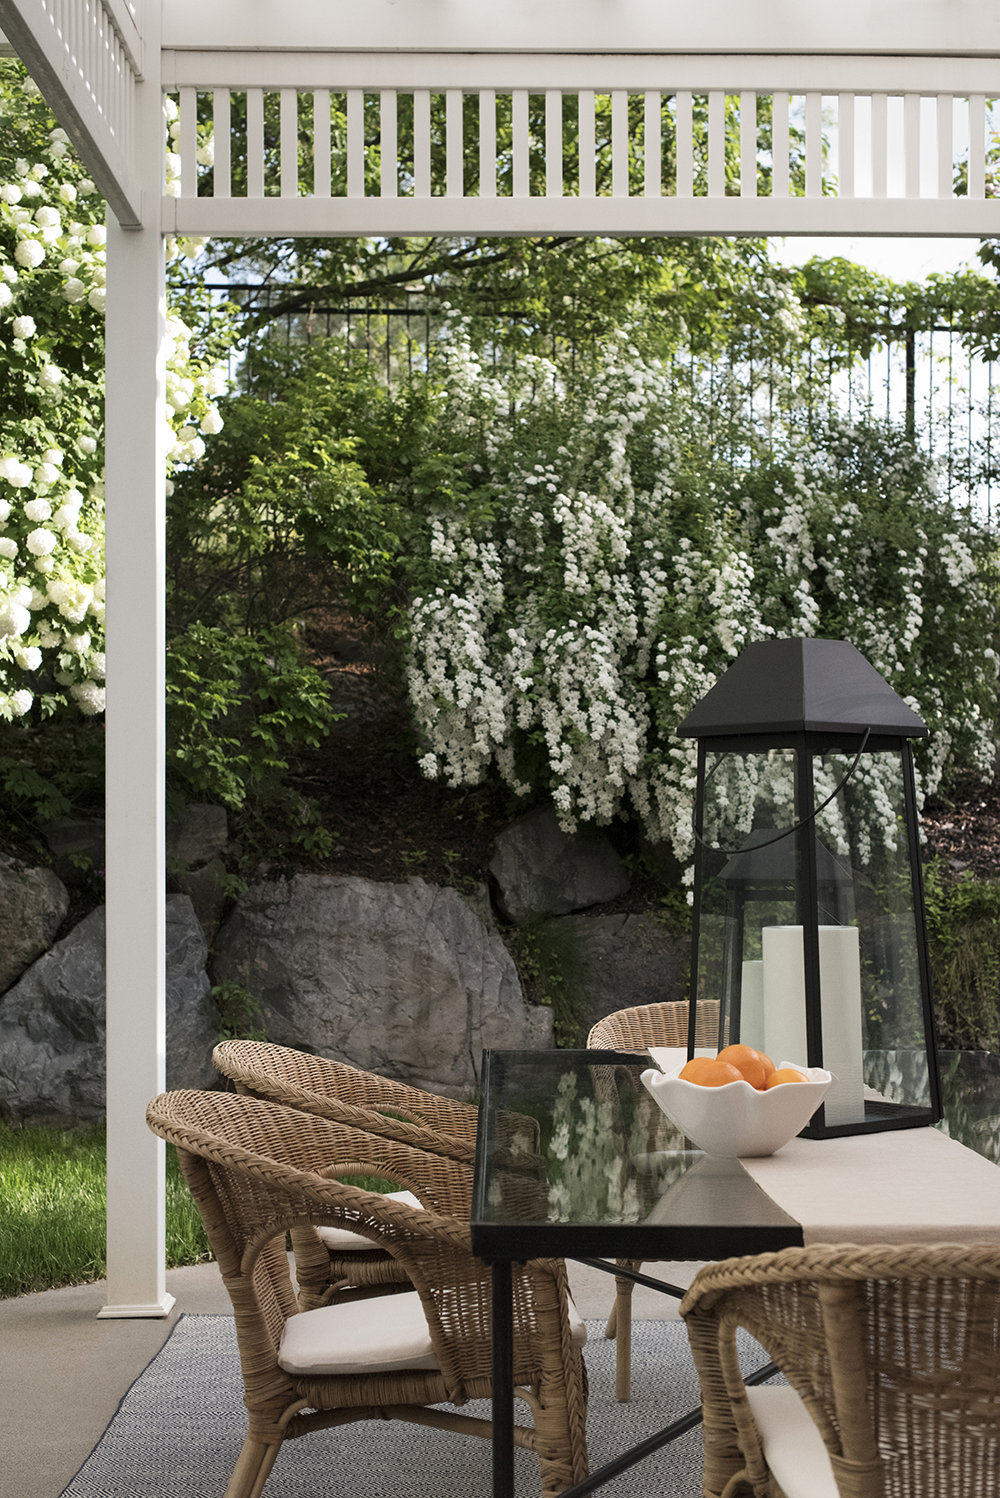 Our Patio This Year (+ Updated Sources) - roomfortuesday.com